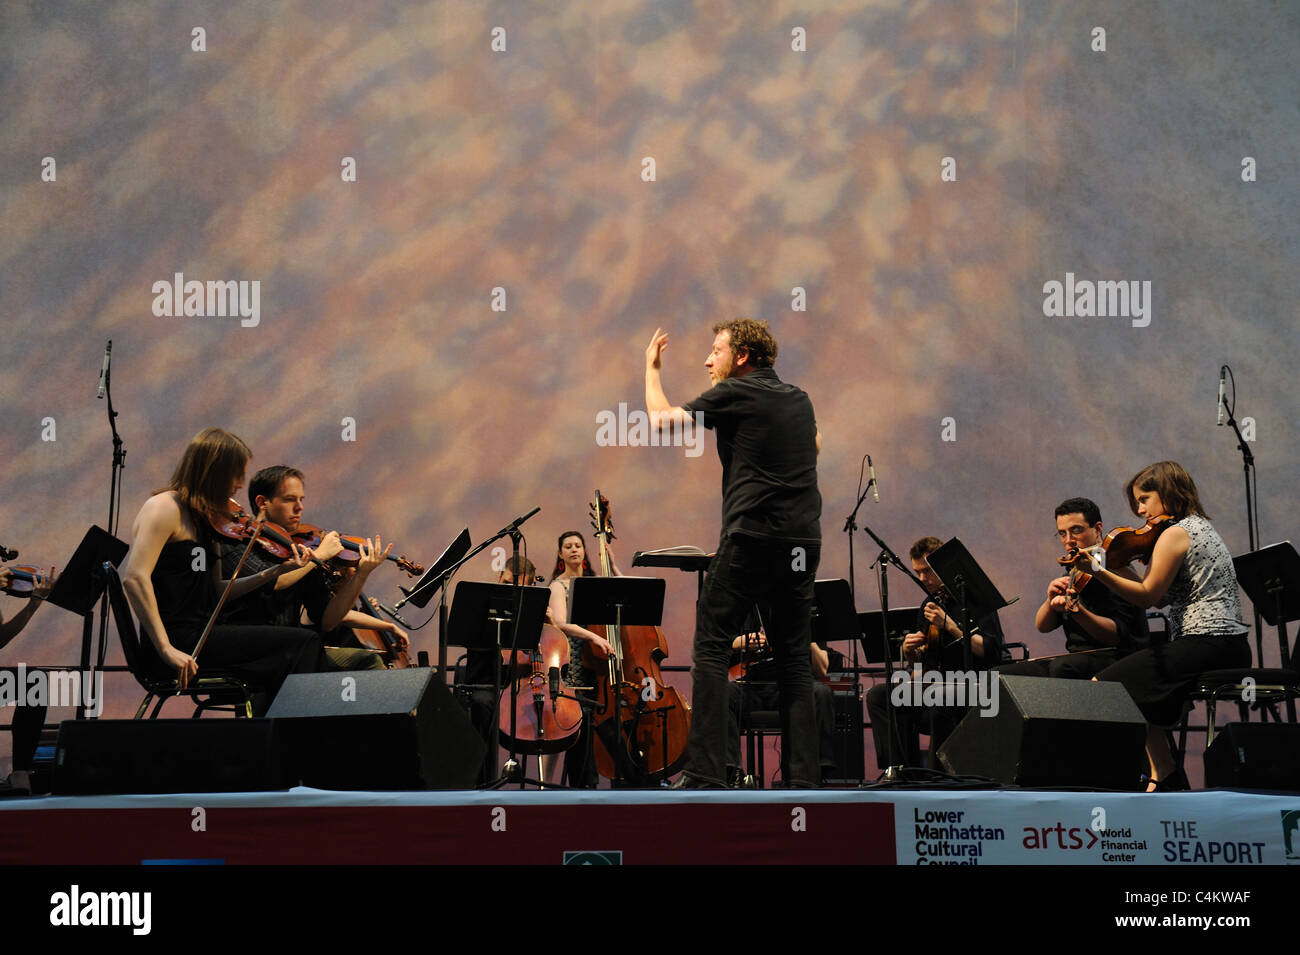 At the annual Bang on a Can marathon of contemporary music, Brad Lubman conducted the string ensemble Signal. - Stock Image